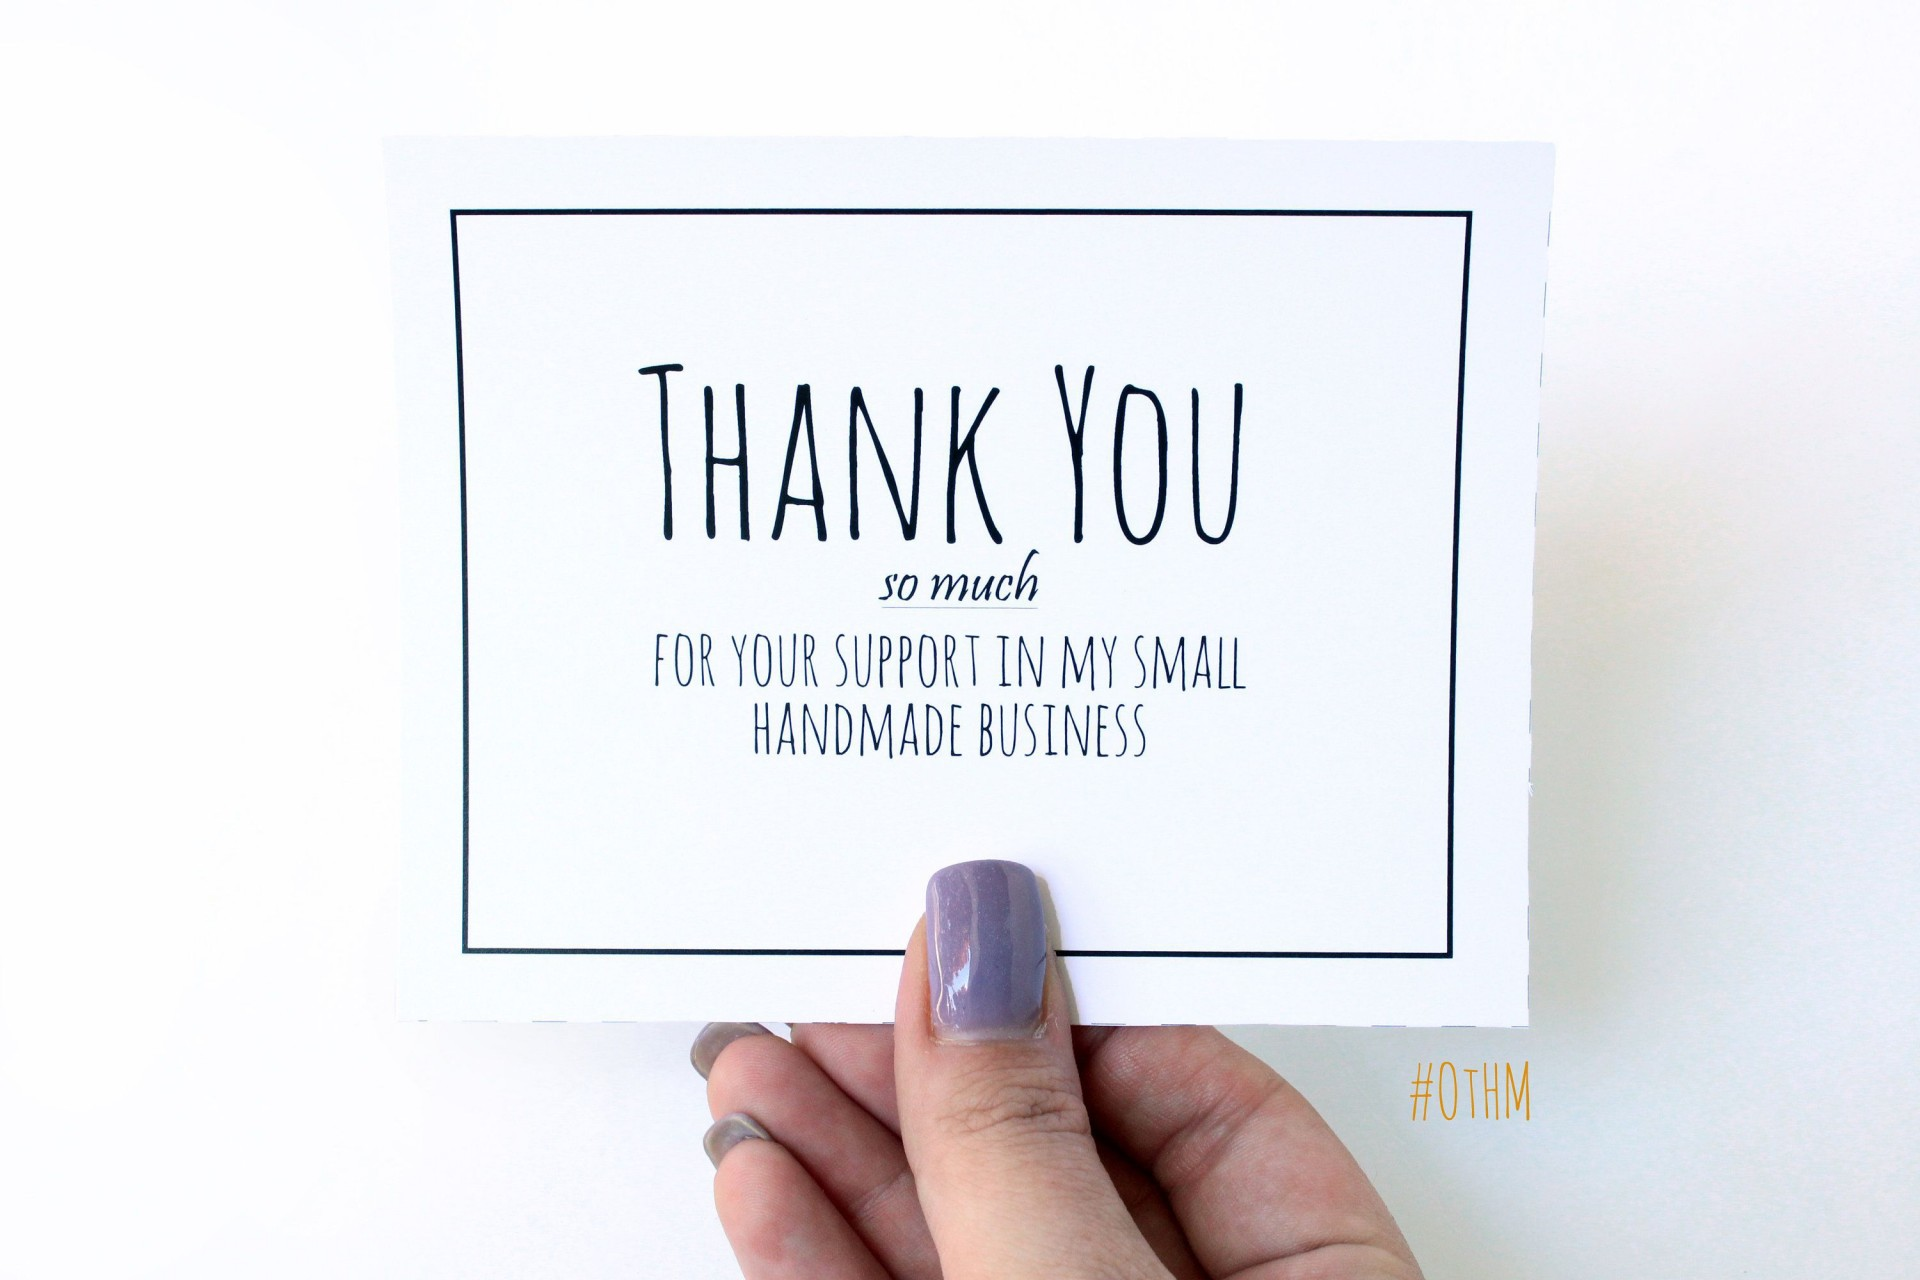 003 Fantastic Thank You Note Template Pdf High Resolution  Card Free Sample Letter For Donation Of Good1920